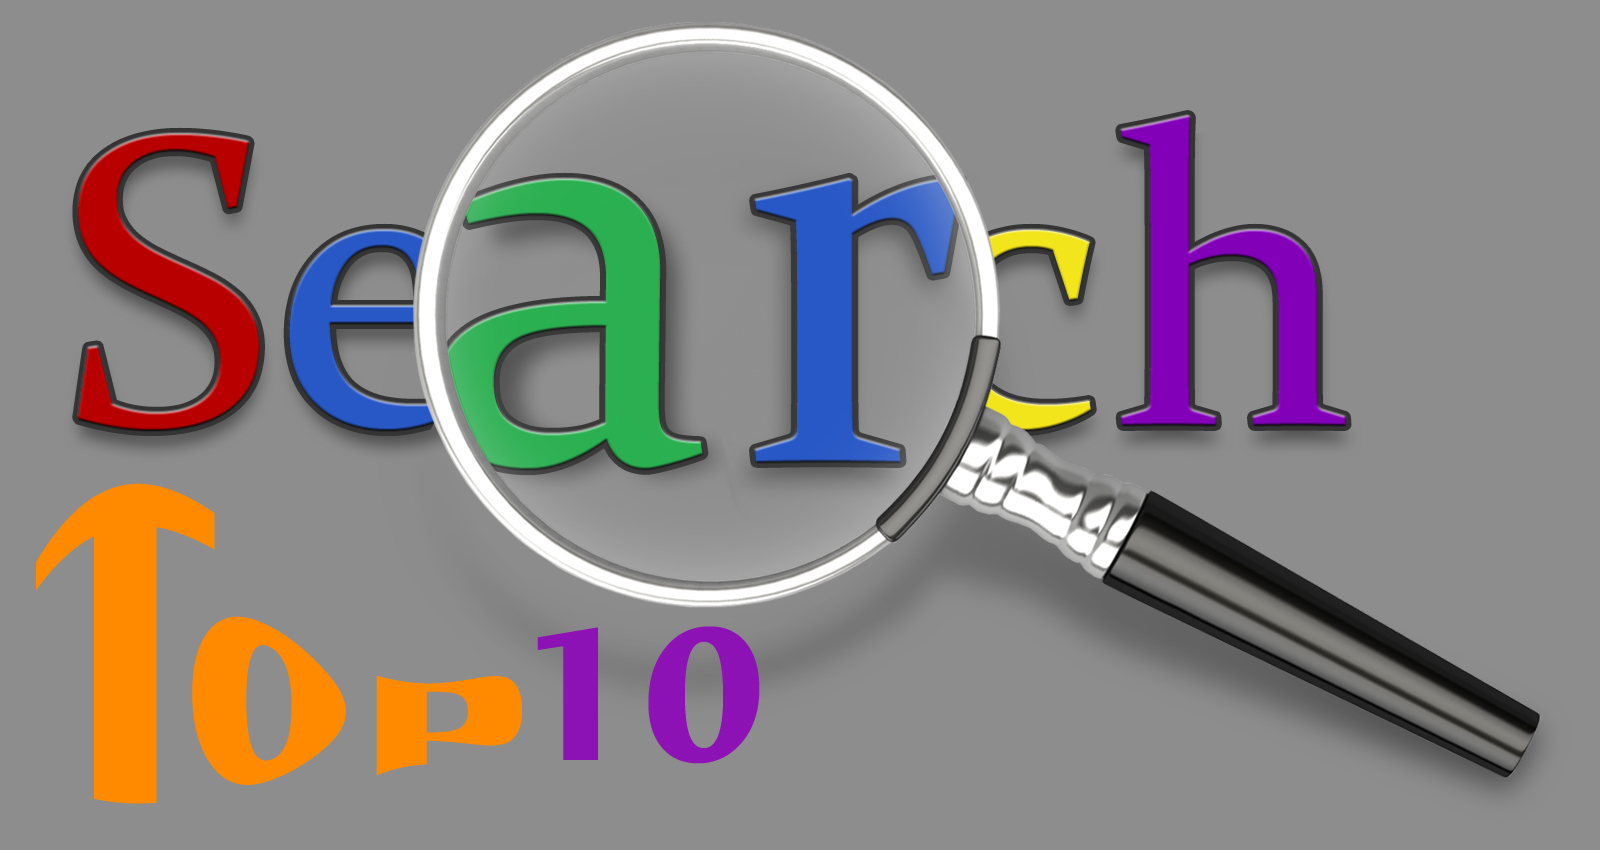 Top 10 Most Popular & Best Search Engines By Ranking